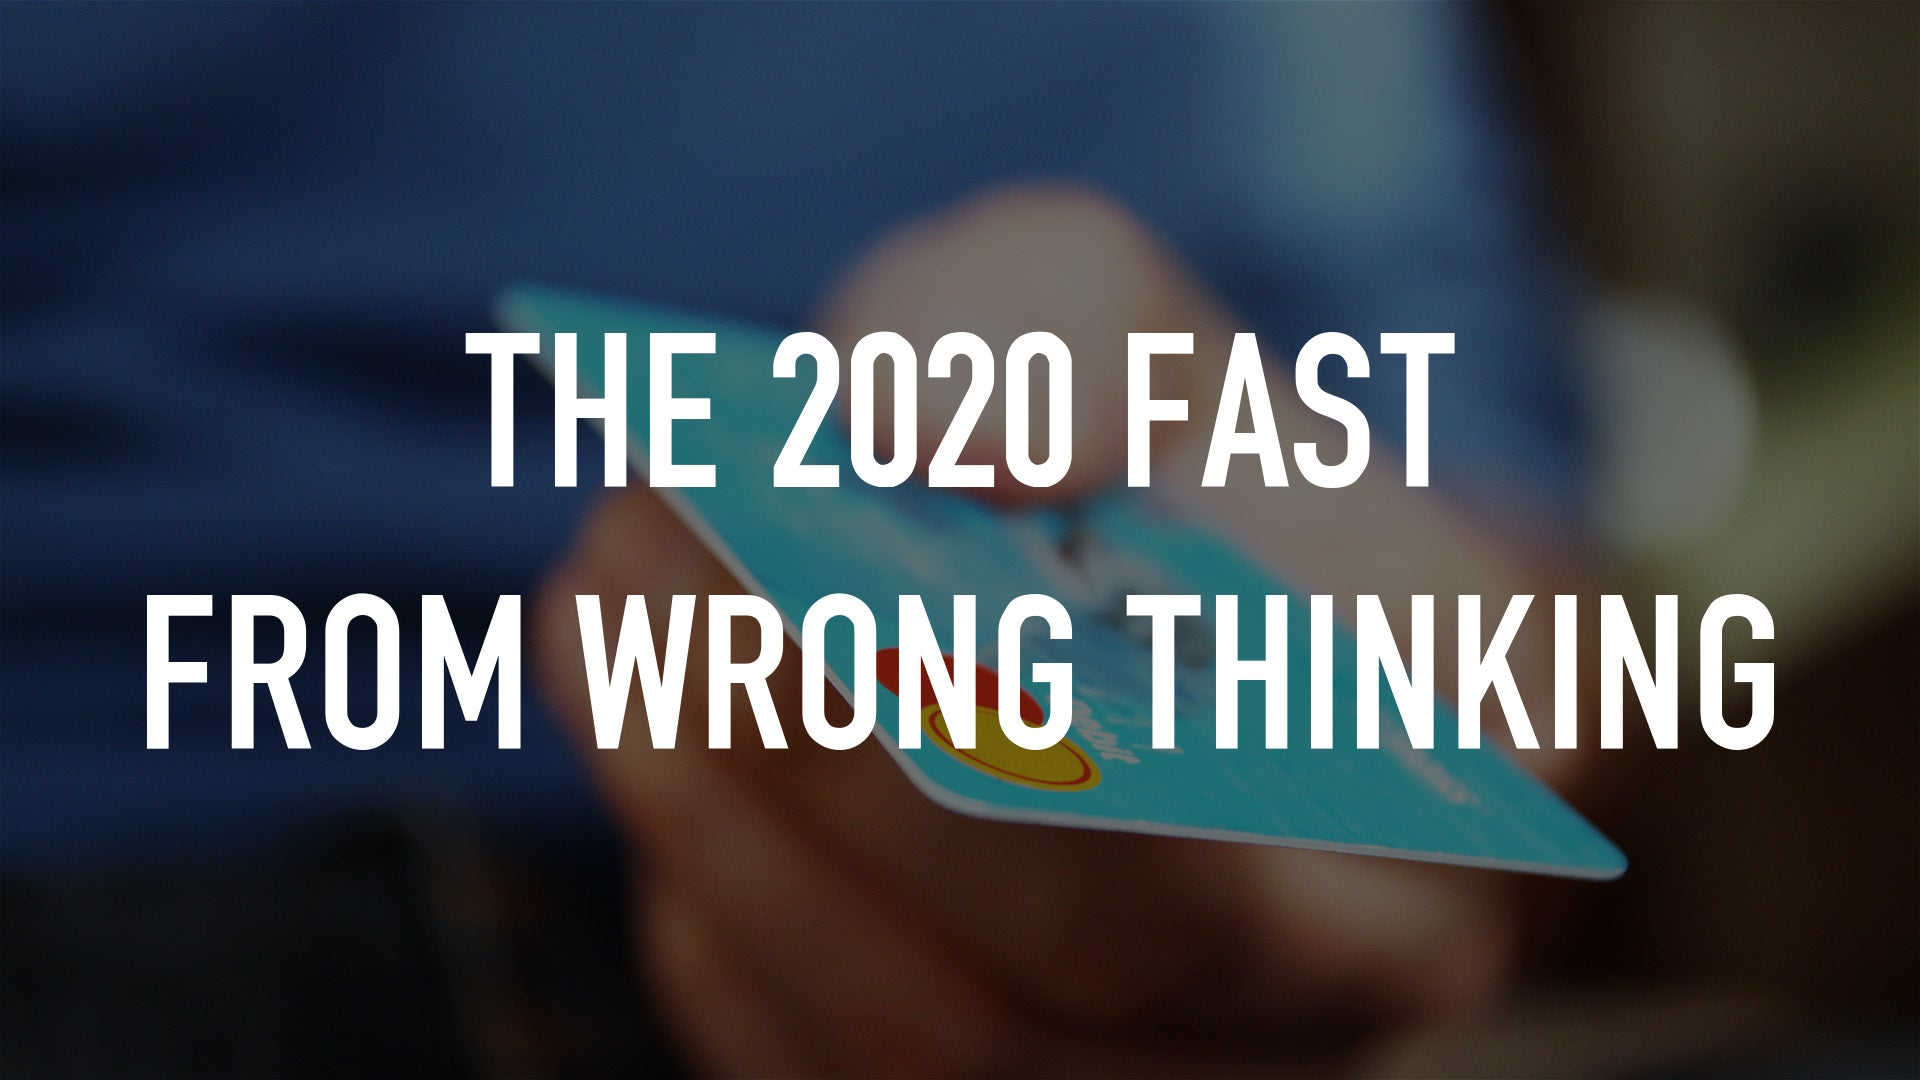 THE 2020 FAST FROM WRONG THINKING